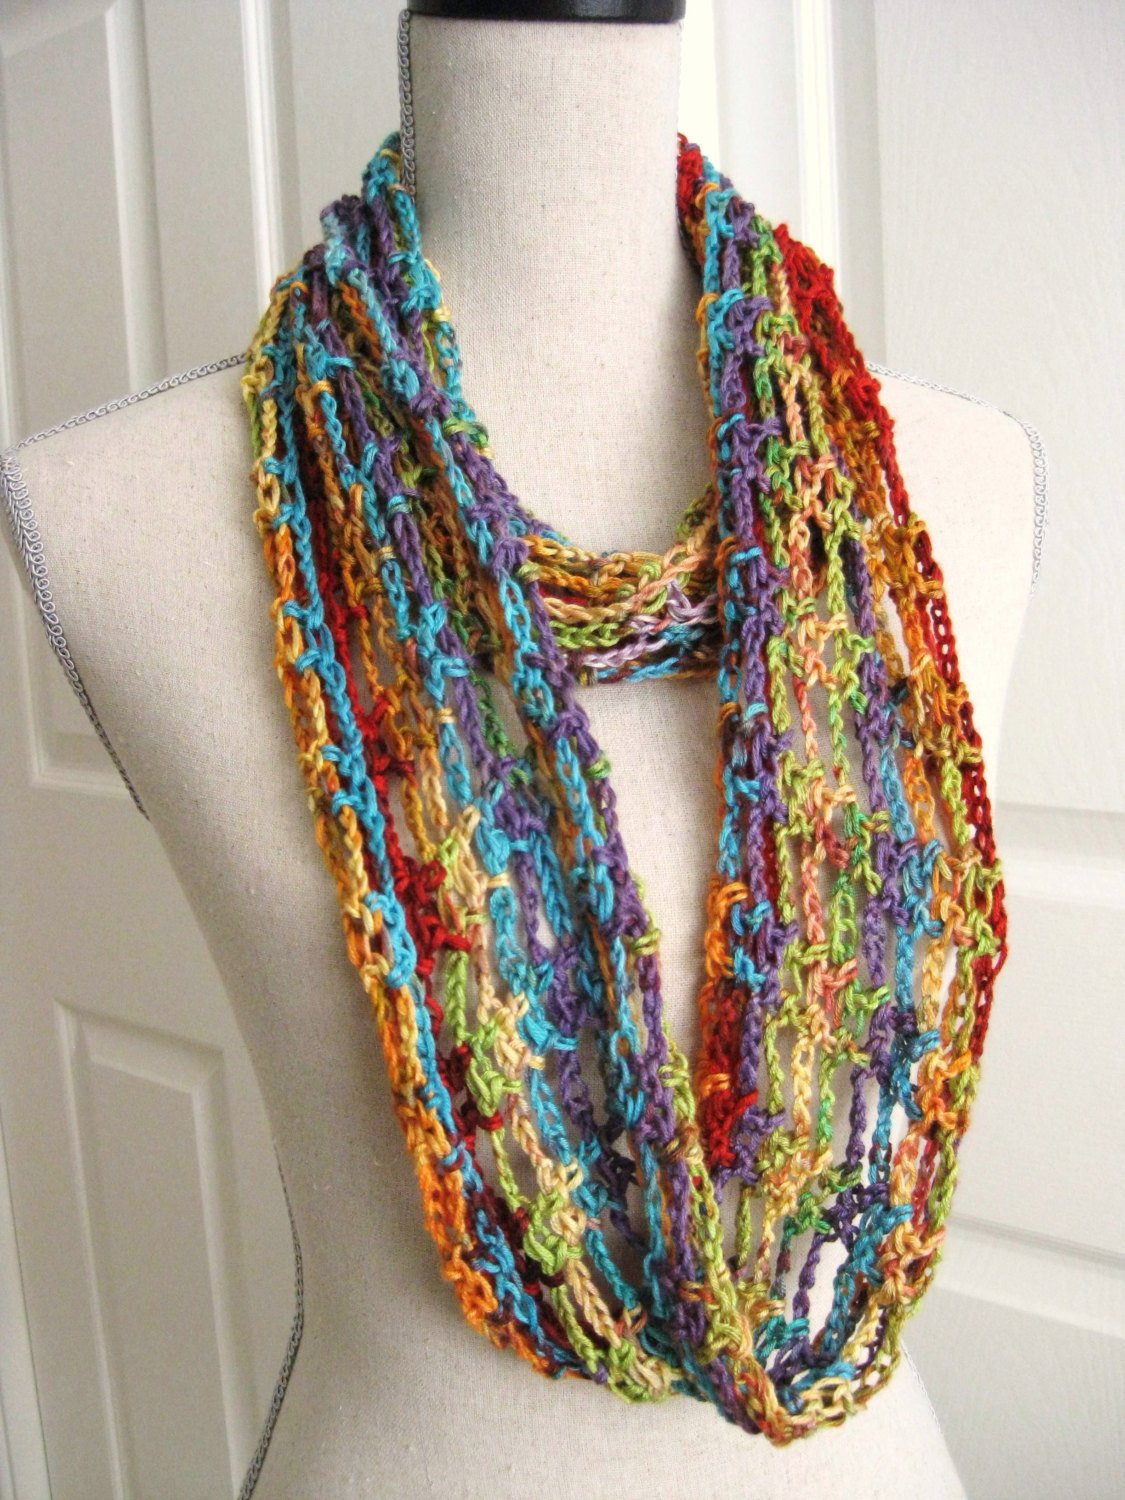 New Crochet Lacy Cowl Infinity Scarf Rainbow Colors Crochet Cowl Scarf Pattern Of Superb 47 Pics Crochet Cowl Scarf Pattern